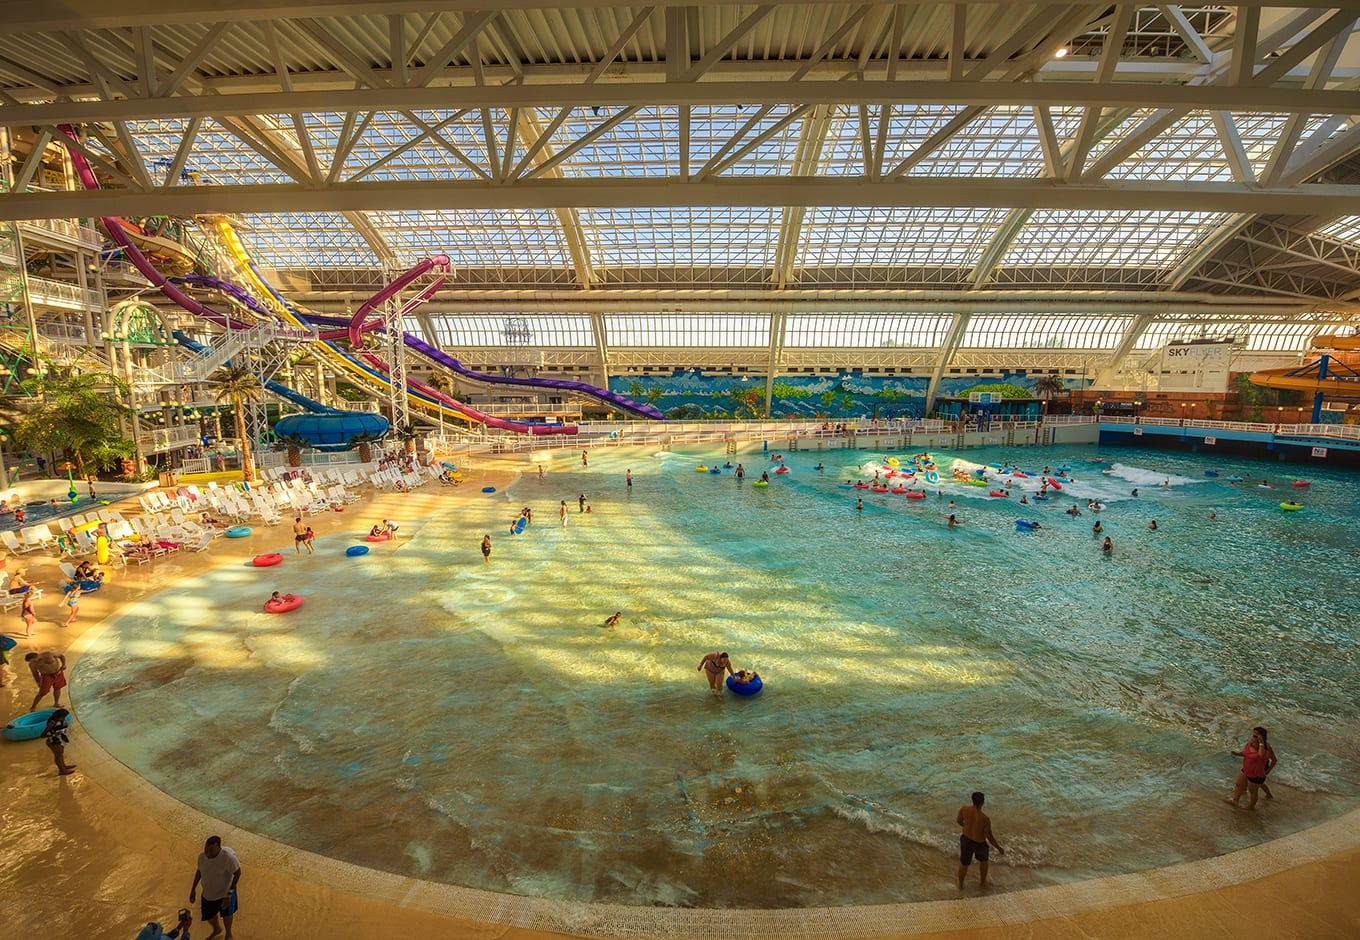 Colorful waterslides leading to a giant pool at the World Waterpark, in Canada.